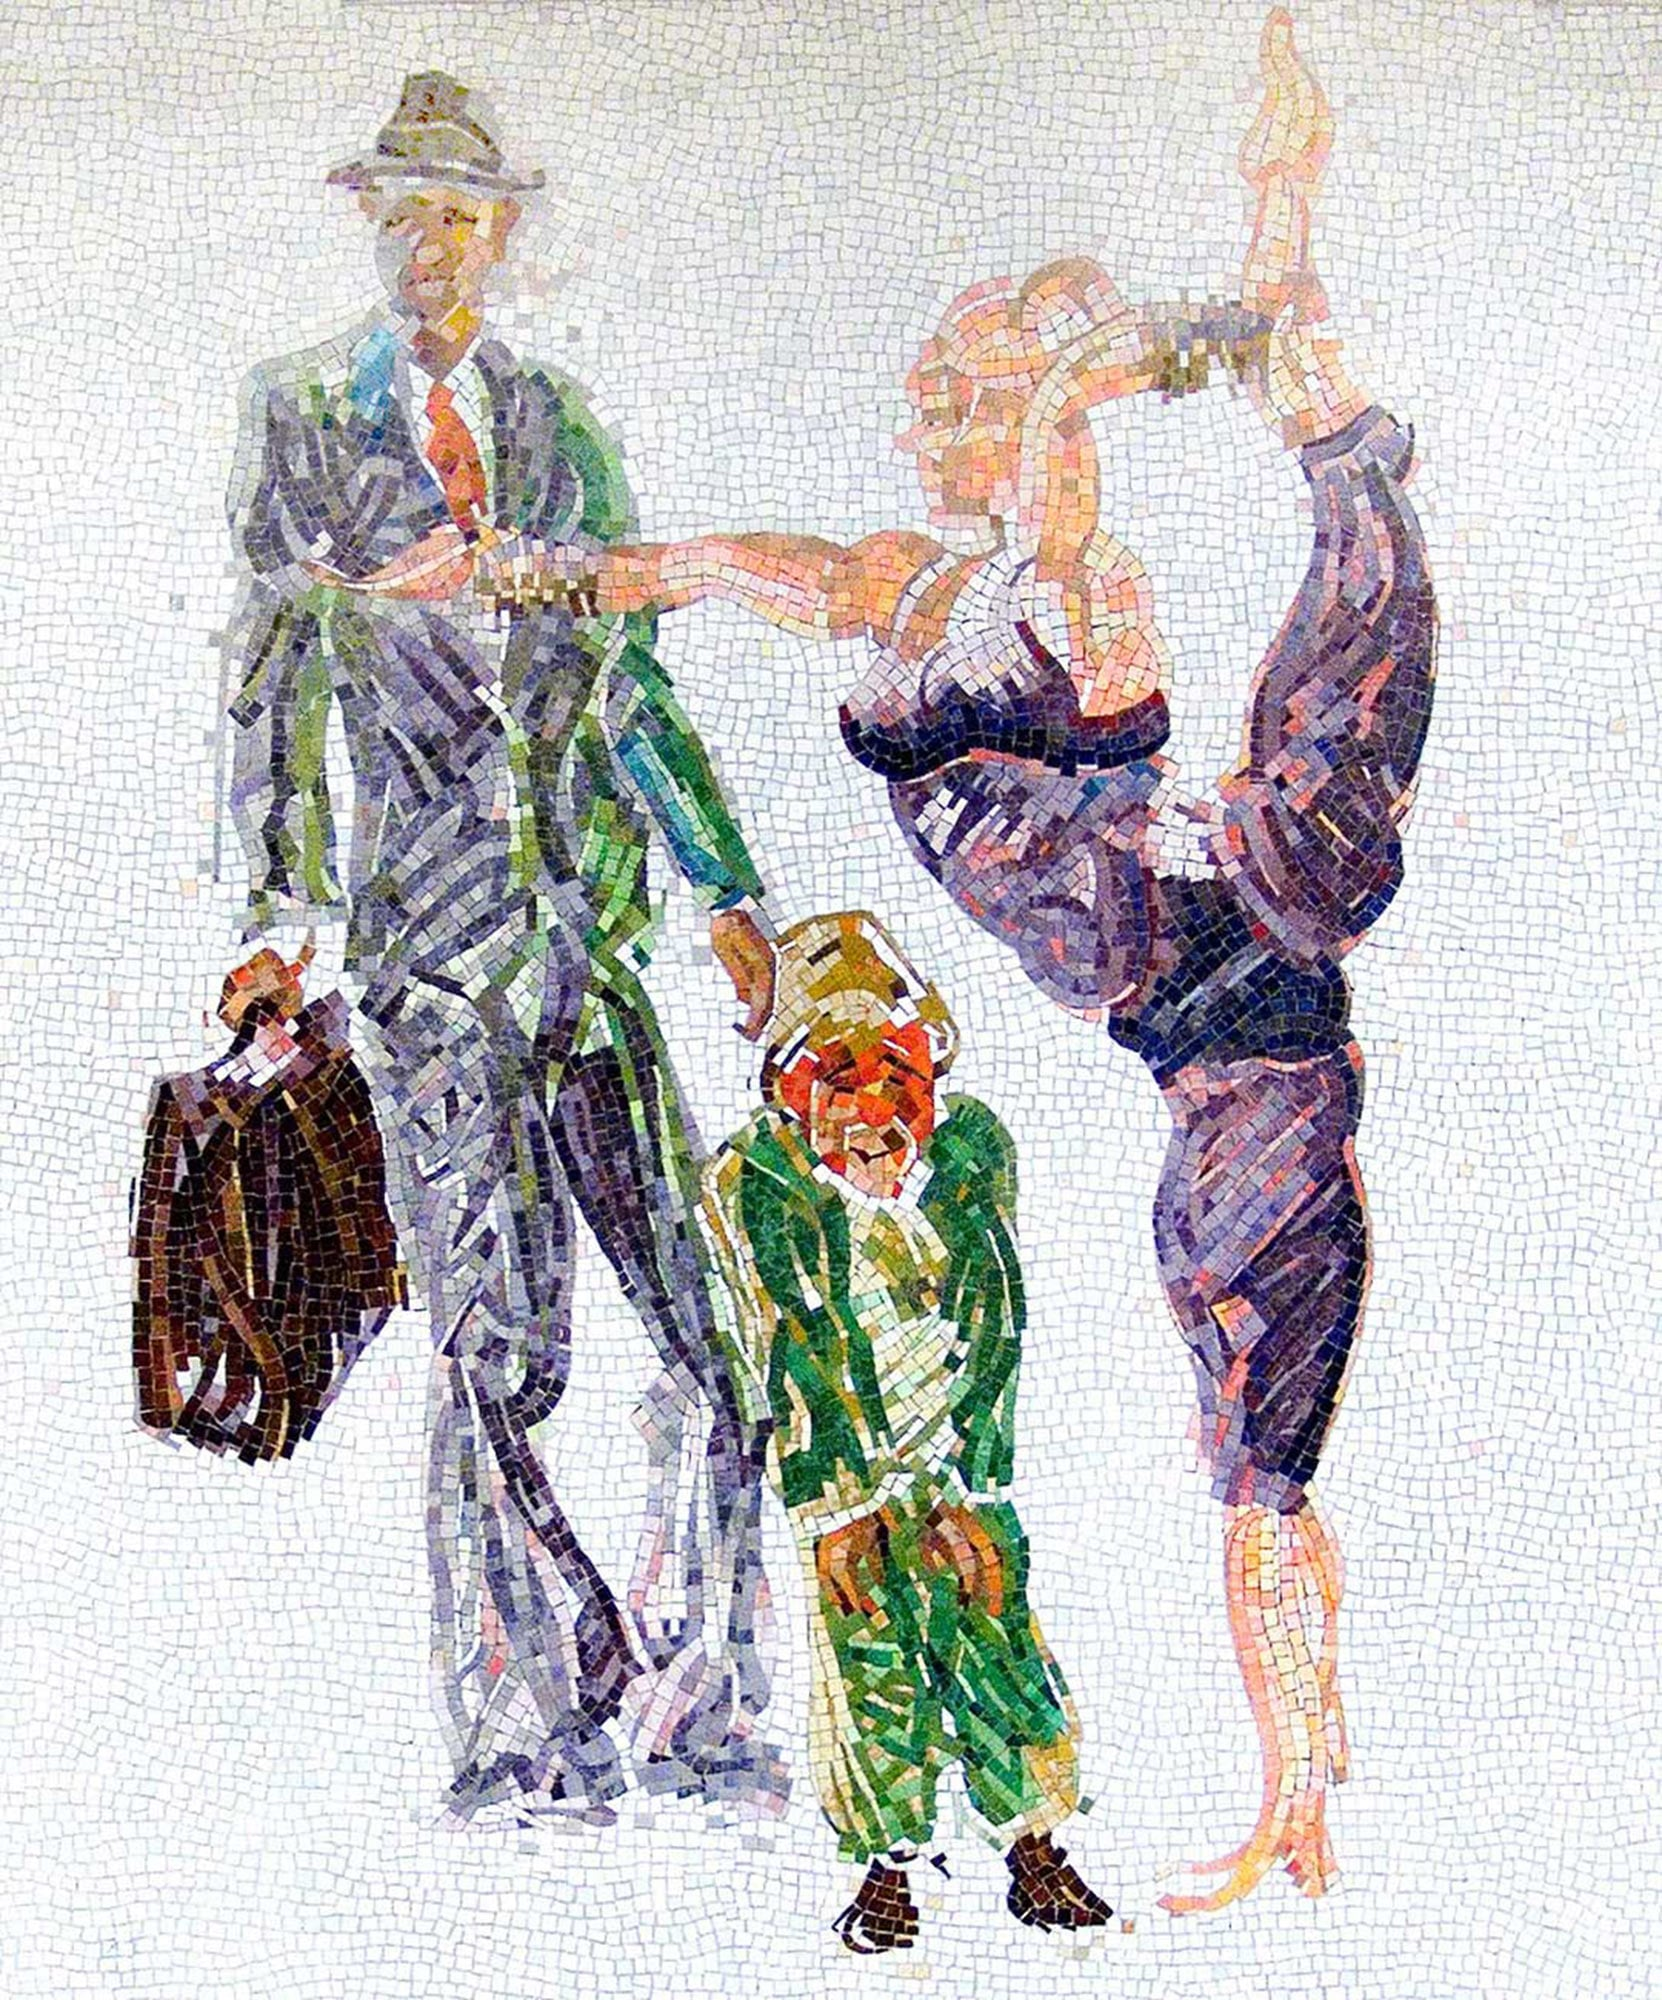 Garden of Circus Delights, 2001. glass mosaic, 96 x 72 in.